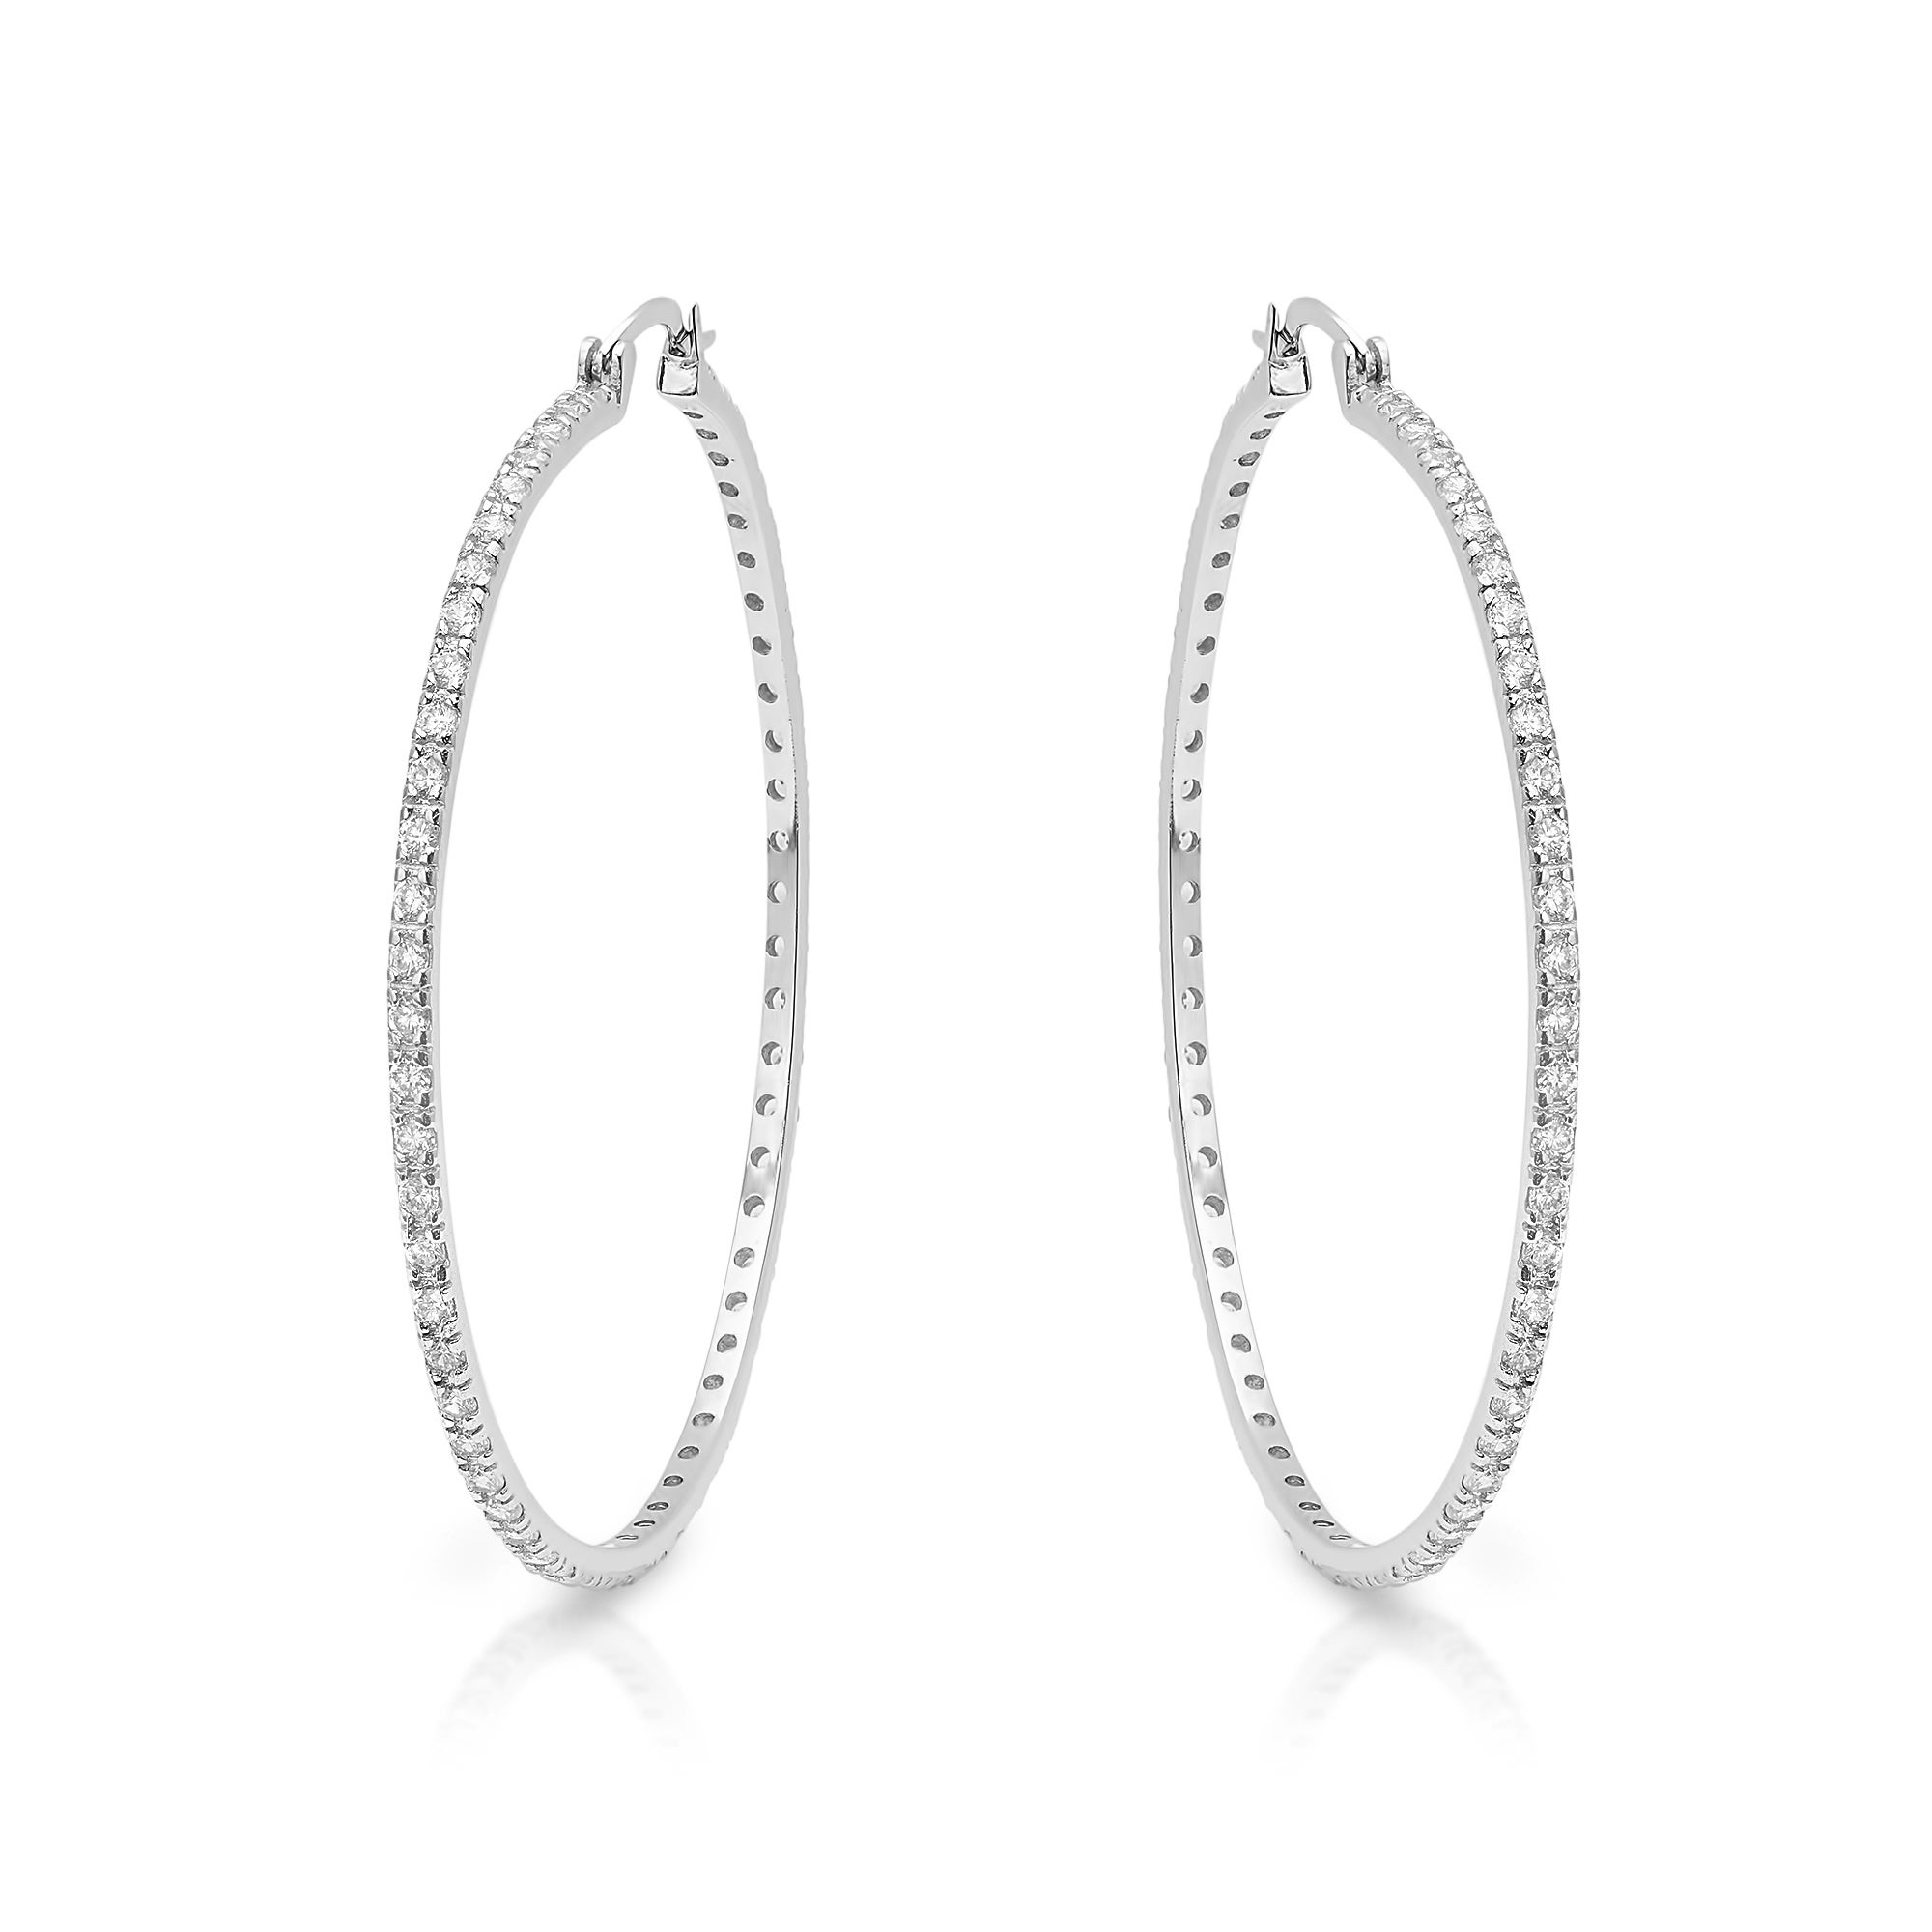 04e27b603 Shop Roberto Martinez Silver Extra Large Cubic Zirconia Hoop Earrings - On  Sale - Free Shipping Today - Overstock - 9601651